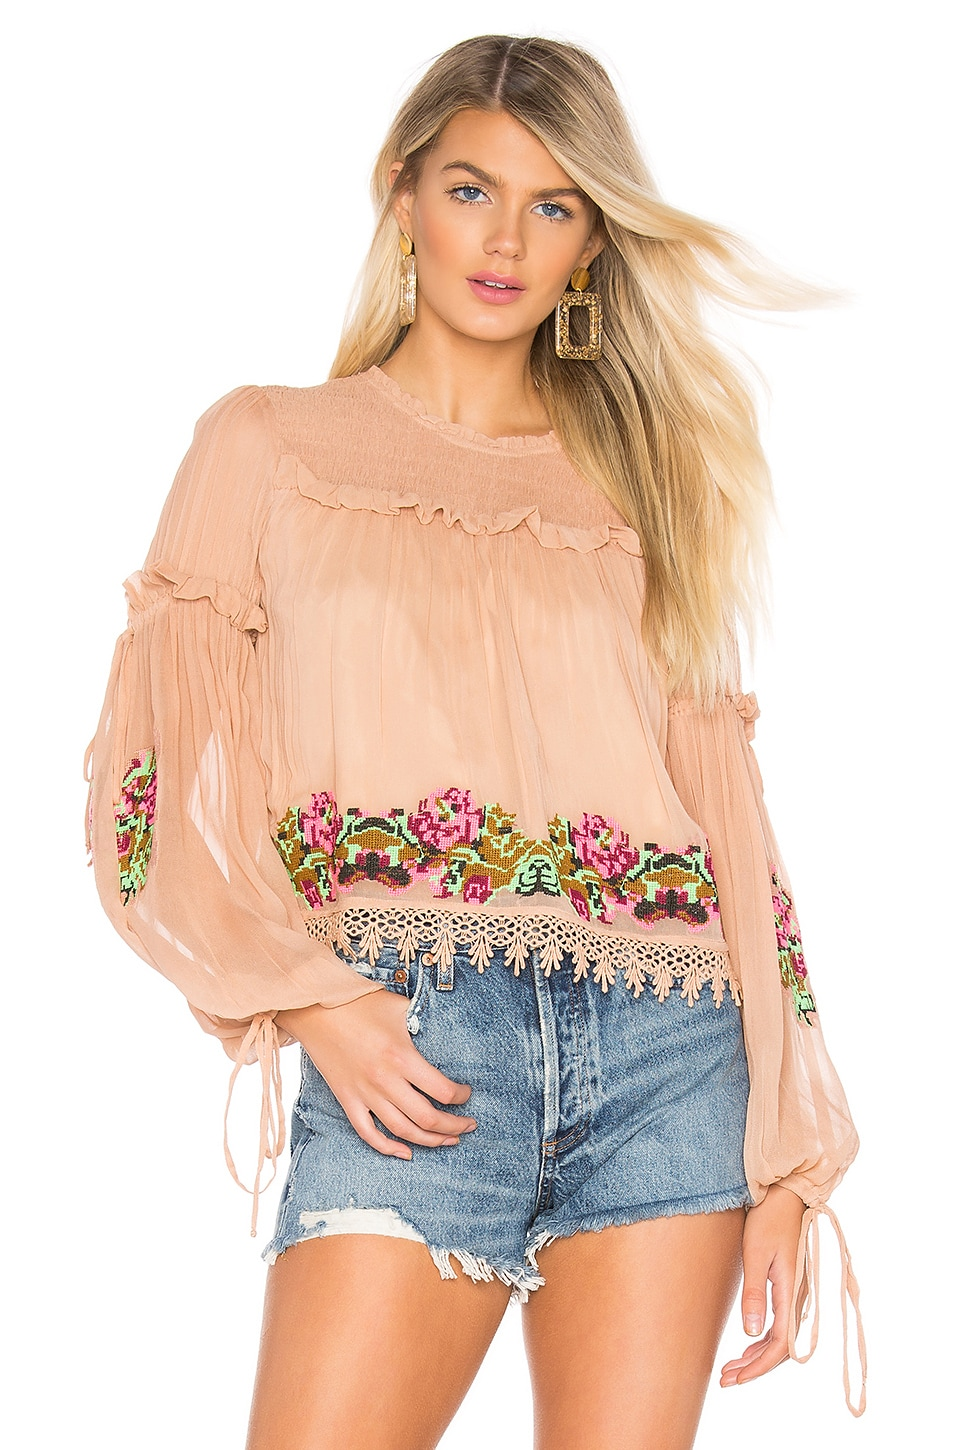 Tularosa Lottie Embroidered Top in Nude